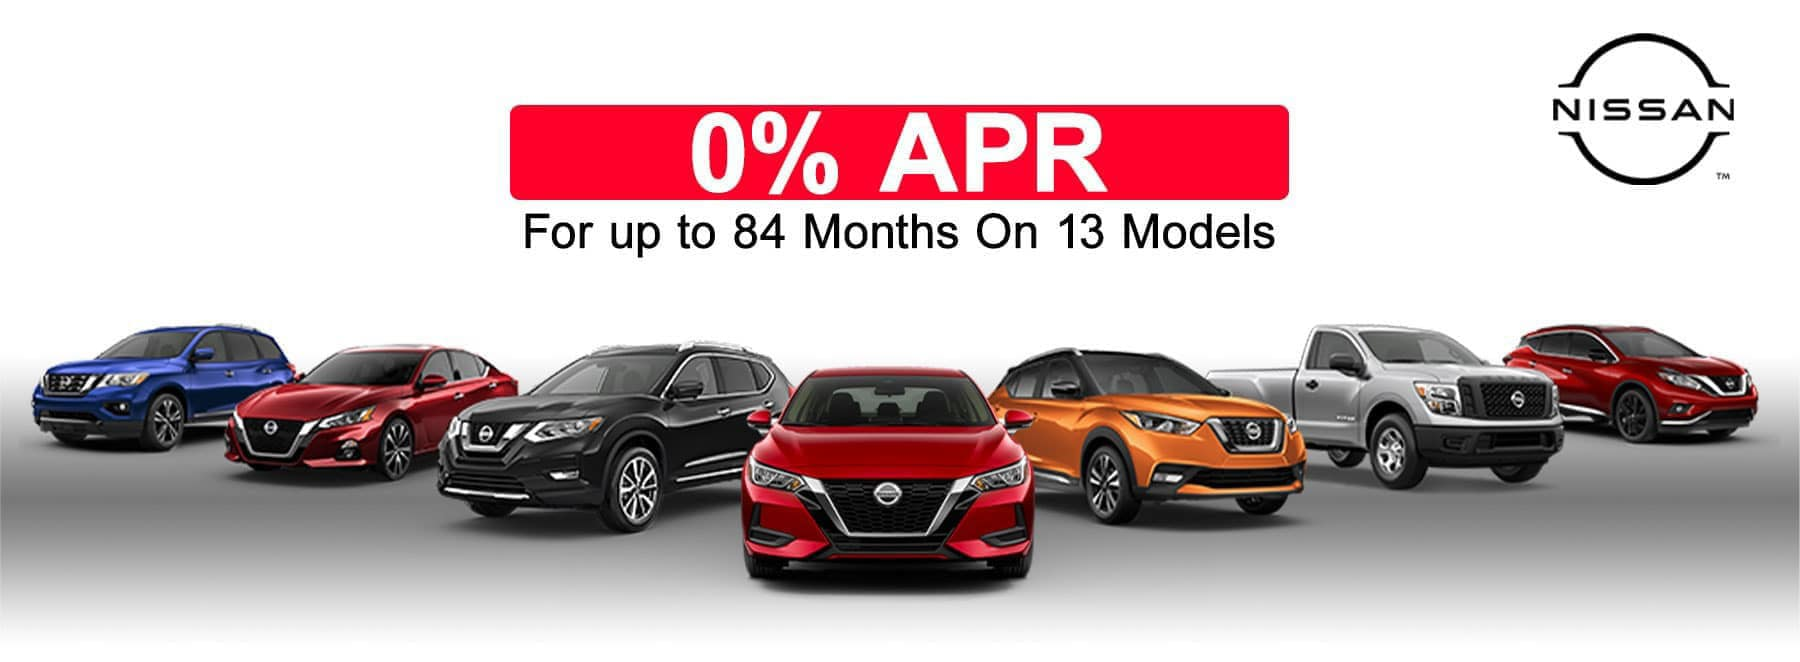 0% for up to 84 months